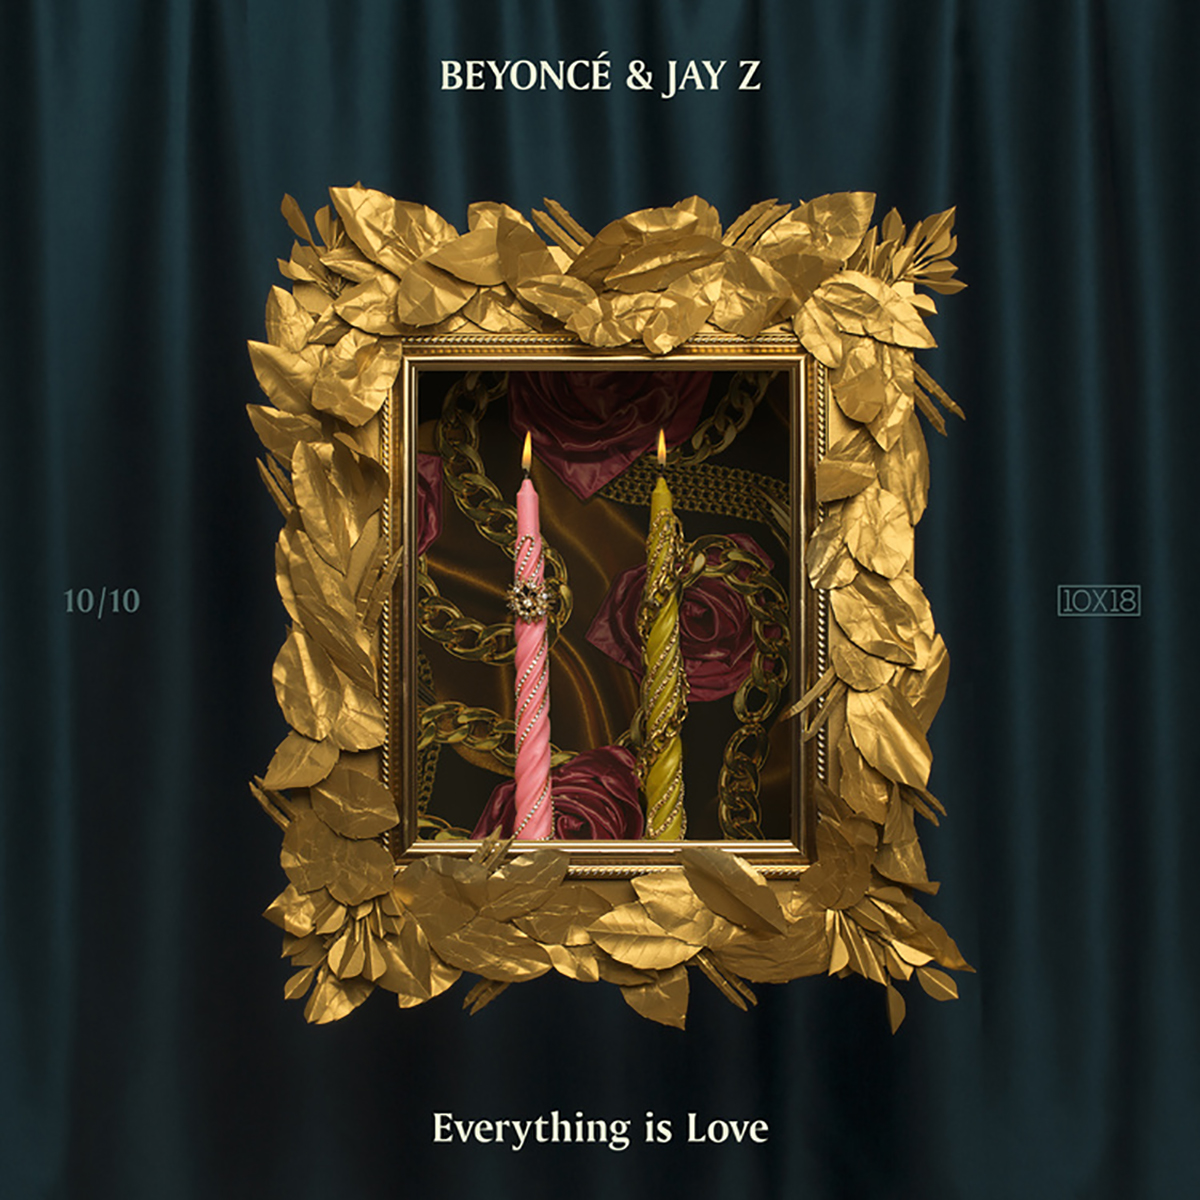 Beyonce and Jay Z album cover